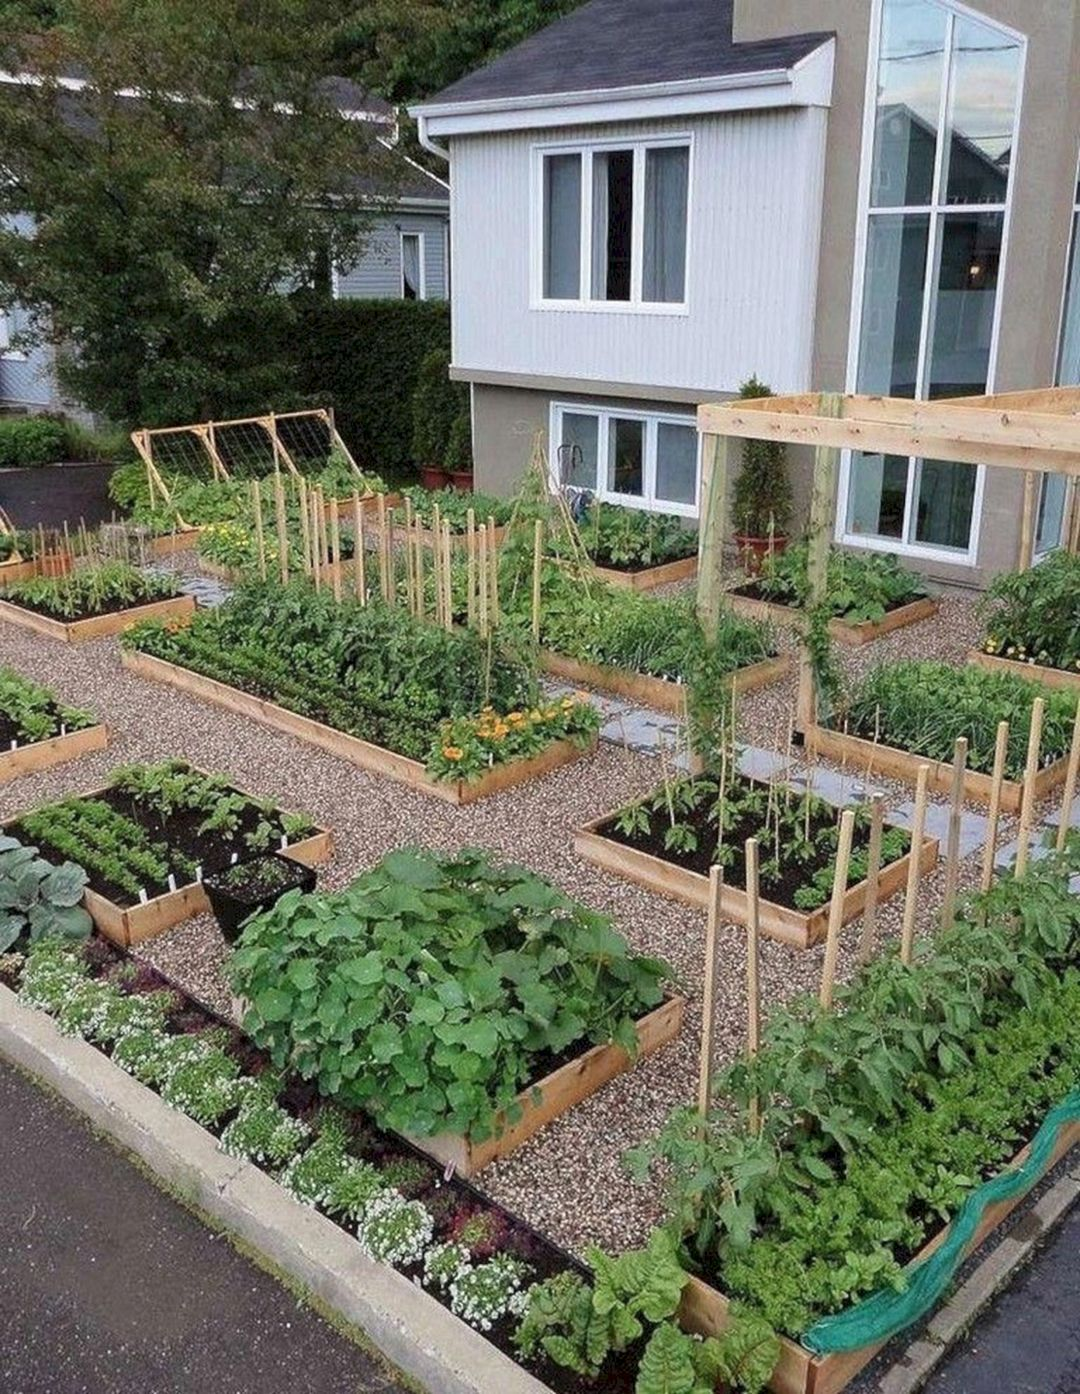 15 Fascinating Fruit And Vegetable Garden Ideas You Need To Try Freshouz Com Garden Layout Garden Layout Vegetable Backyard Vegetable Gardens